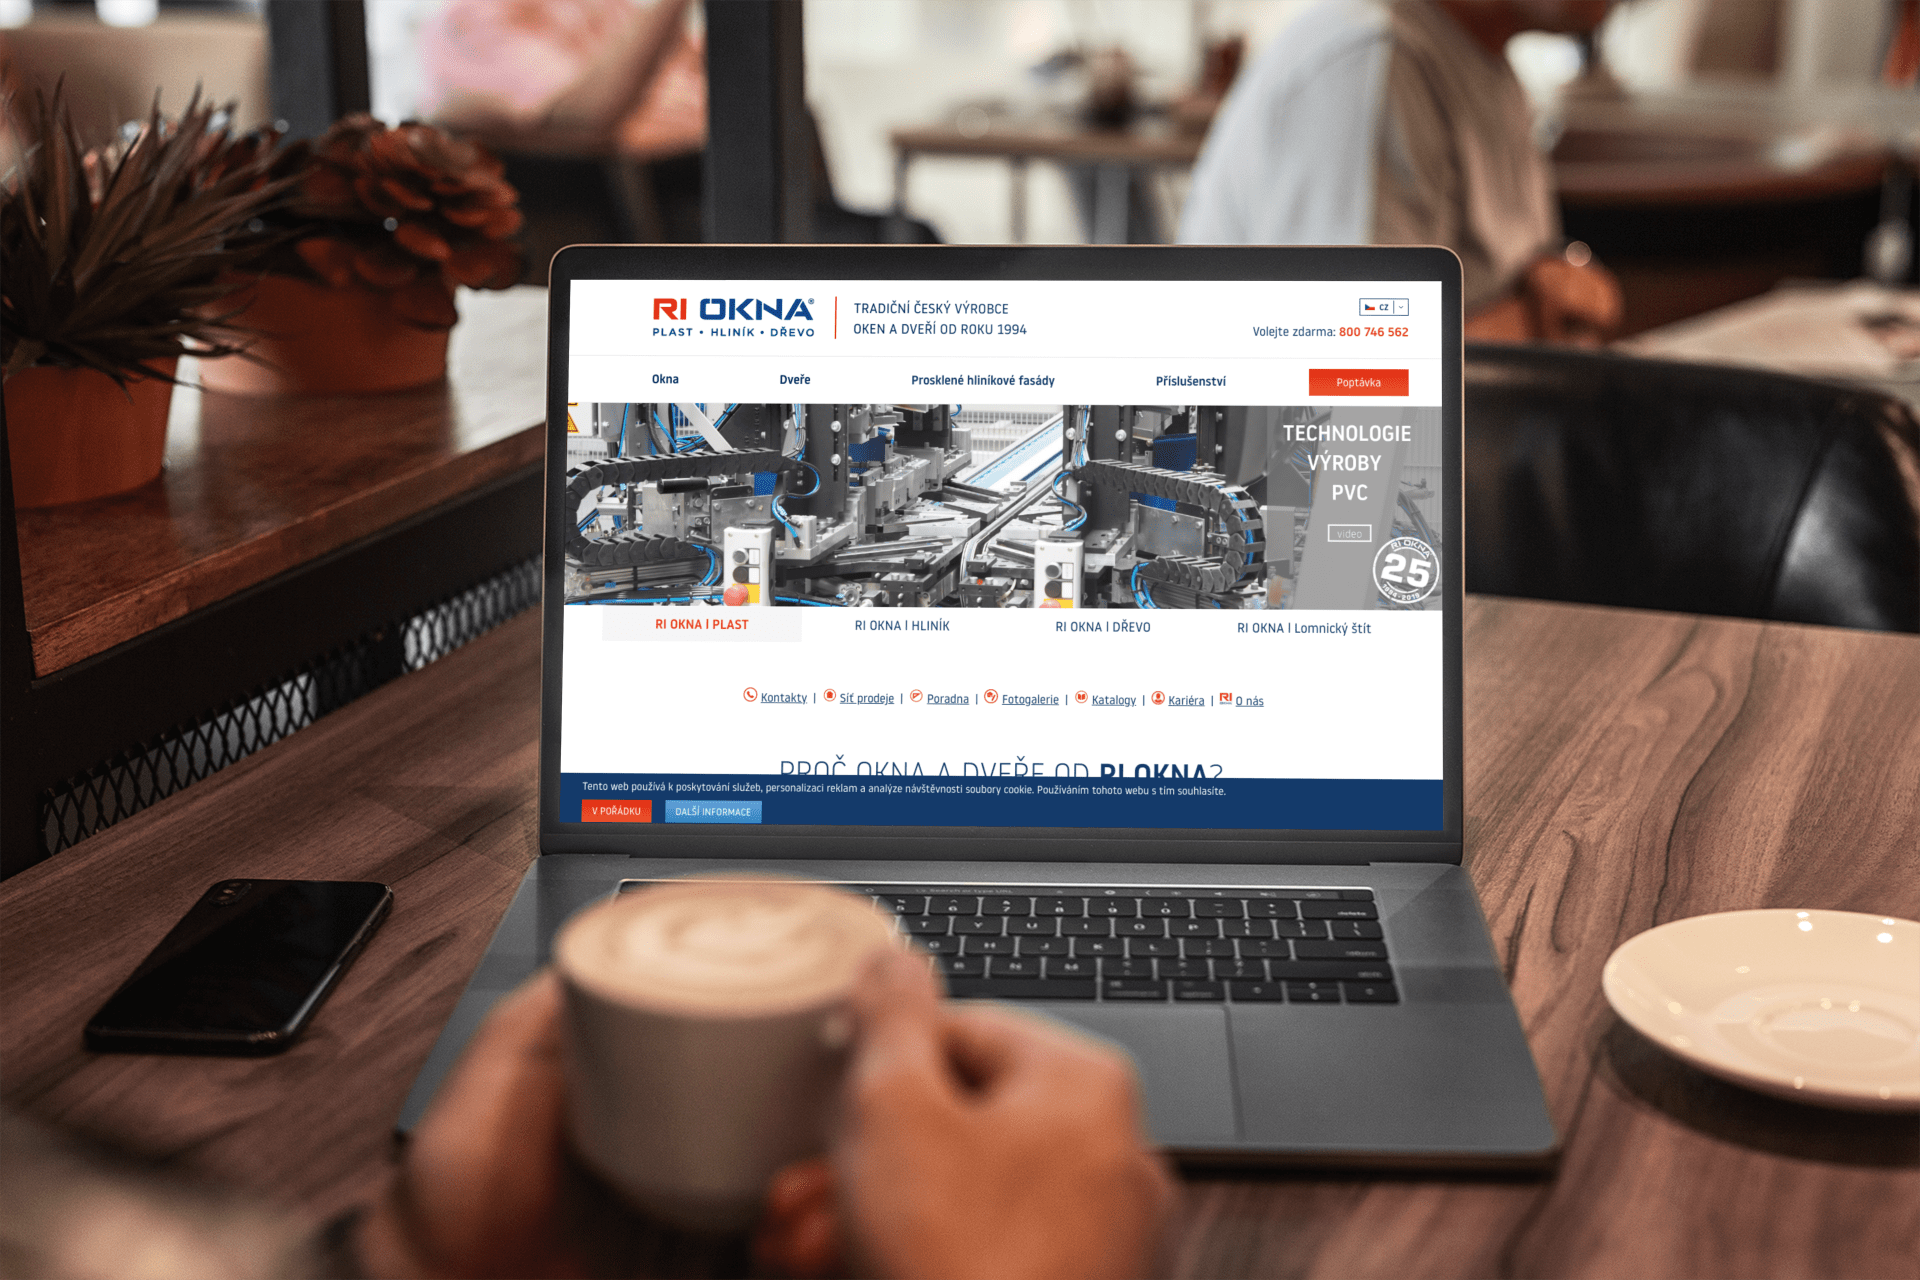 macbook-pro-mockup-featuring-a-man-working-at-a-coffee-shop-491-el